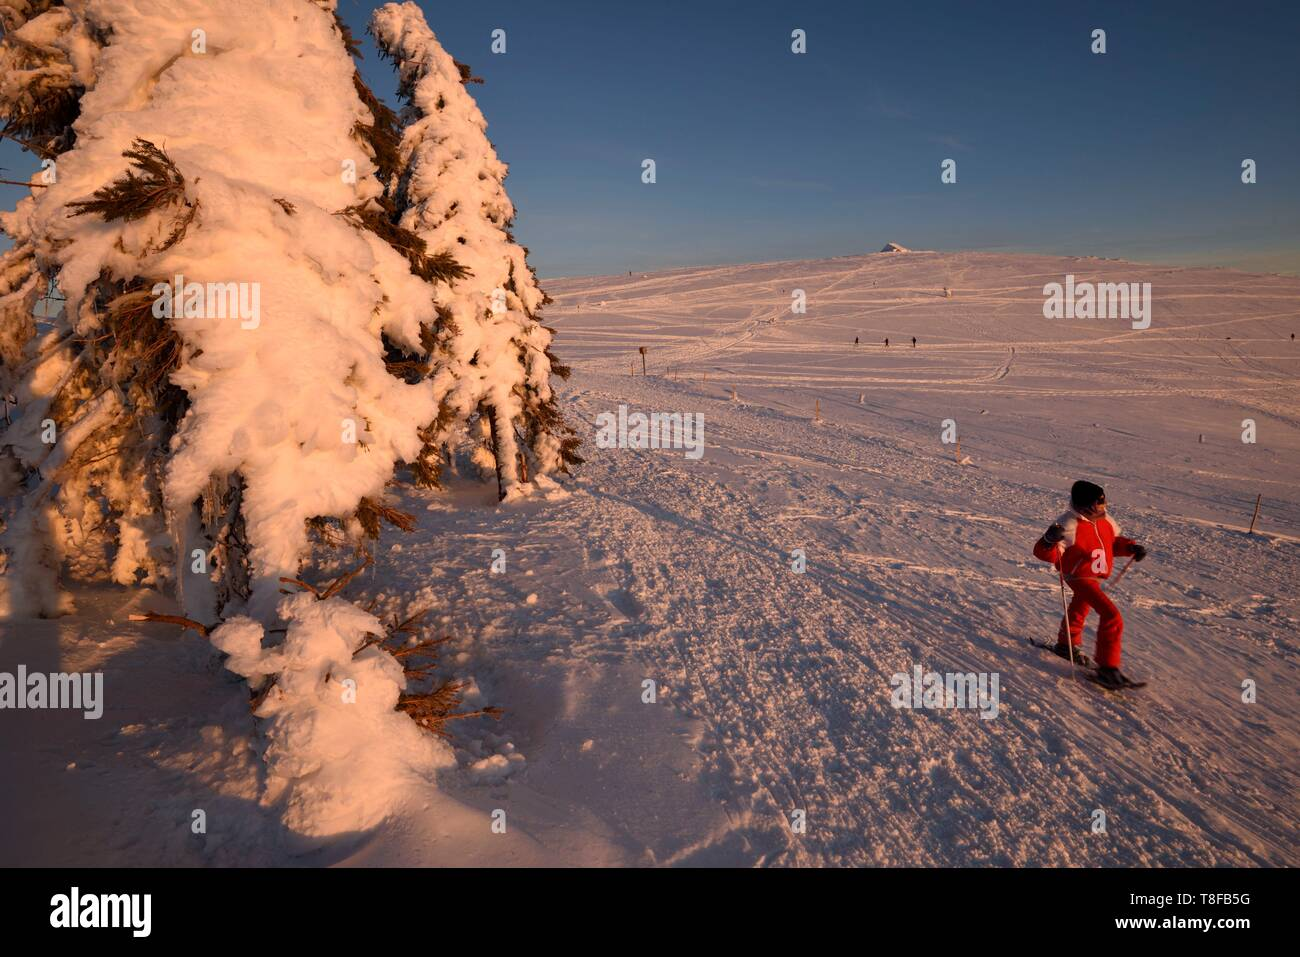 France, Haut Rhin, Hautes Vosges, Le Hohneck (1363 m), summit, spruces, snowshoe hike, sunset, winter, snow - Stock Image